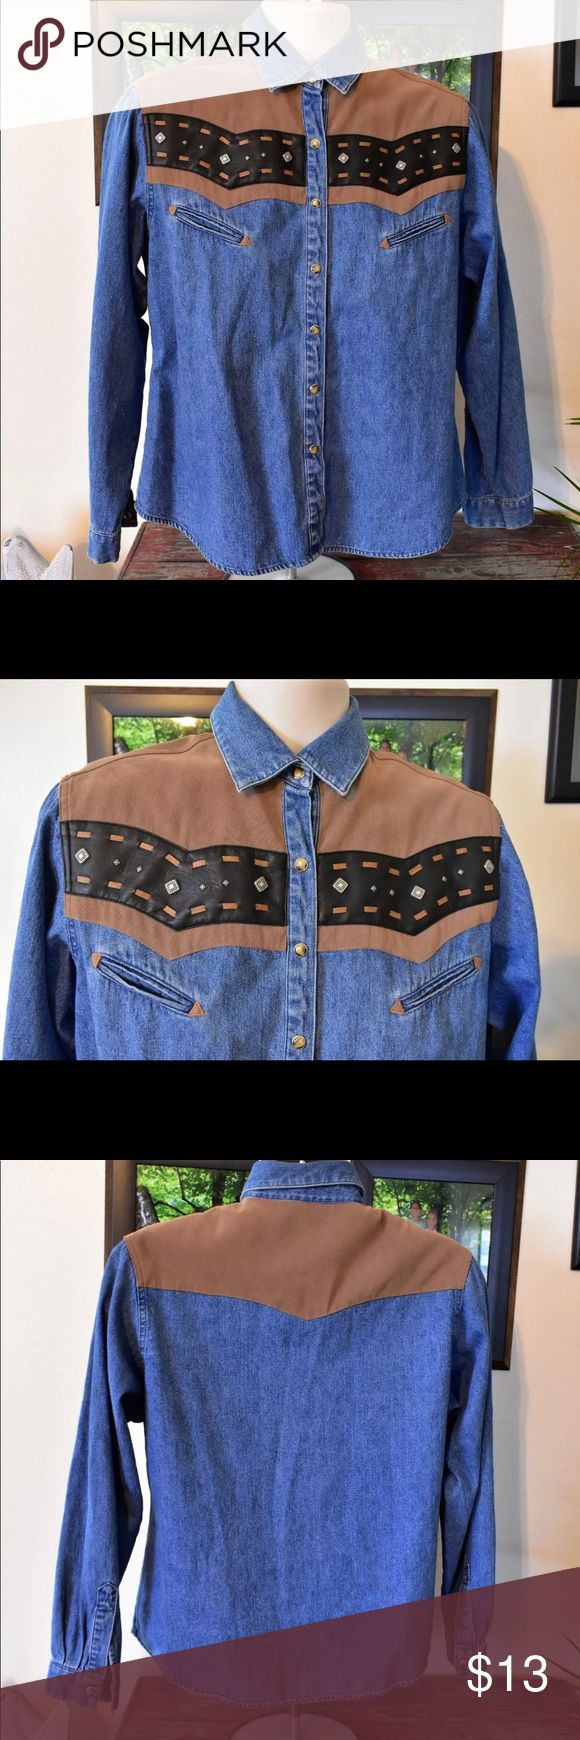 """Vintage Wrangler Denim Button Down w/Conchos L Vintage 80s women's Wrangler western shirt Cotton, polyester and spandex excellent condition, no flaws Marked a women's size L Please refer to measurements for a perfect fit. Shoulders 17"""" Sleeves 23"""" Chest 43"""" Waist 42"""" Length 25"""" Wrangler Tops Button Down Shirts"""